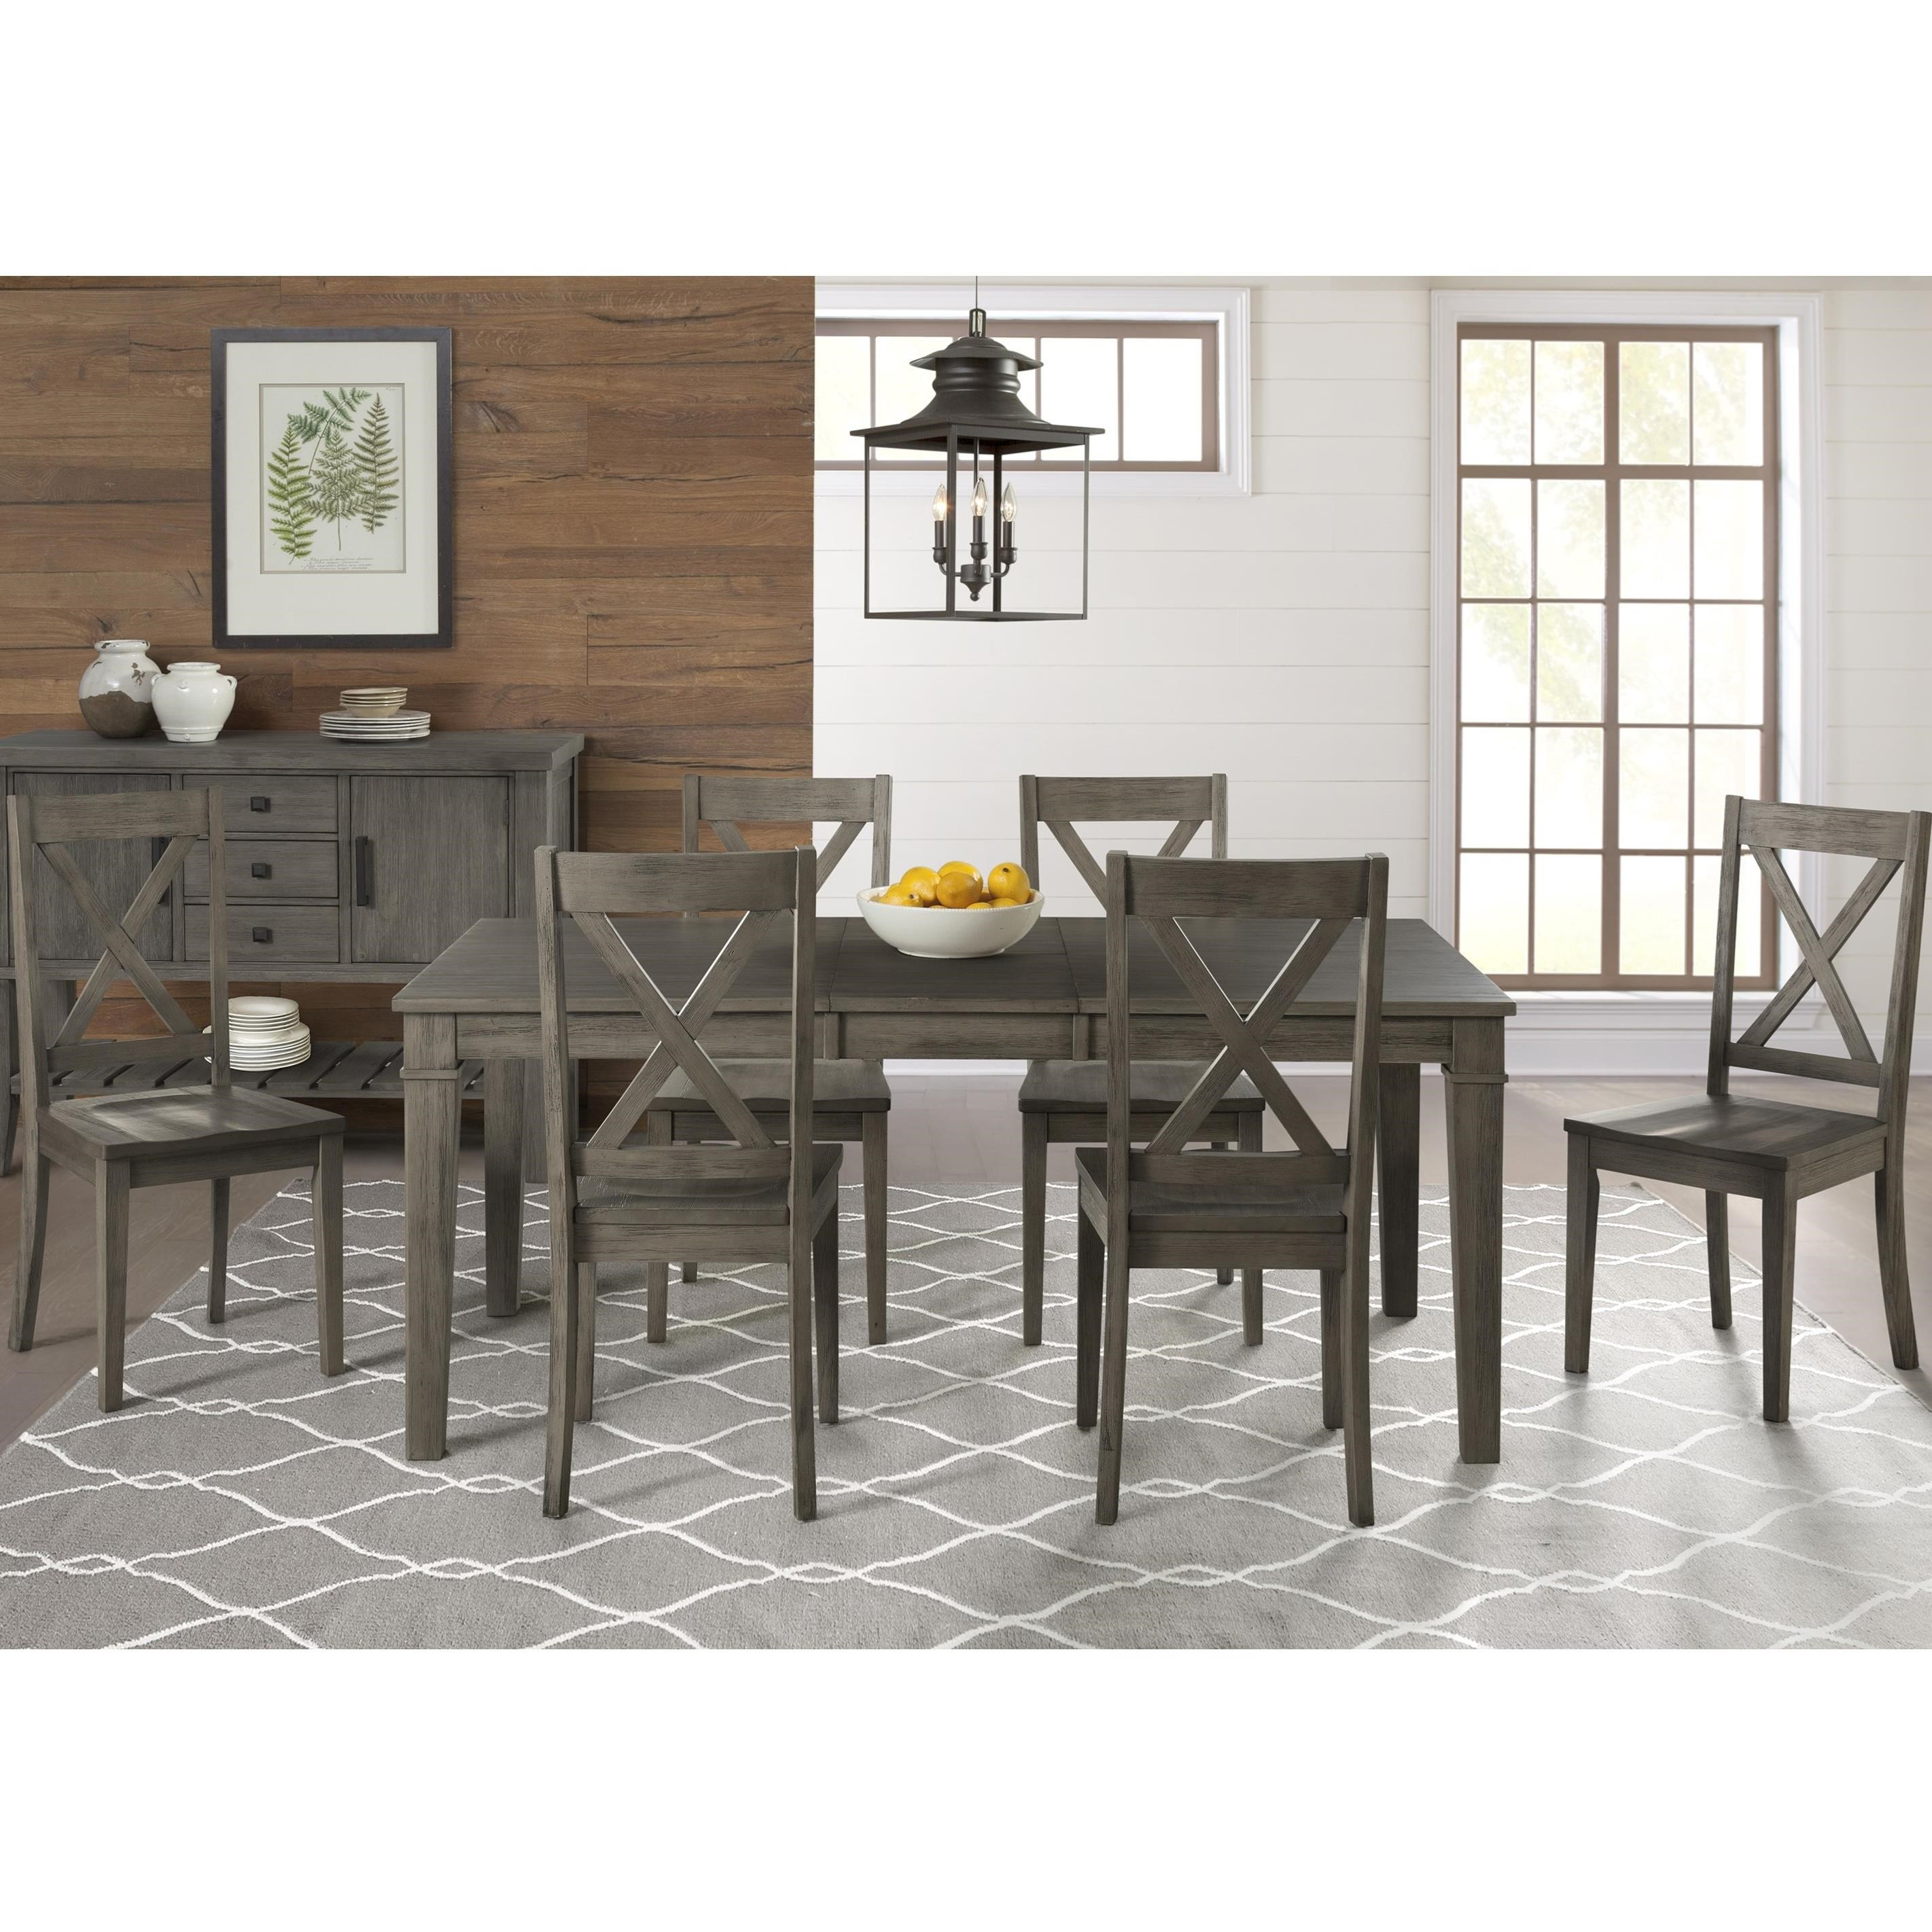 Huron Transitional Table and Chair Set by AAmerica at Johnny Janosik